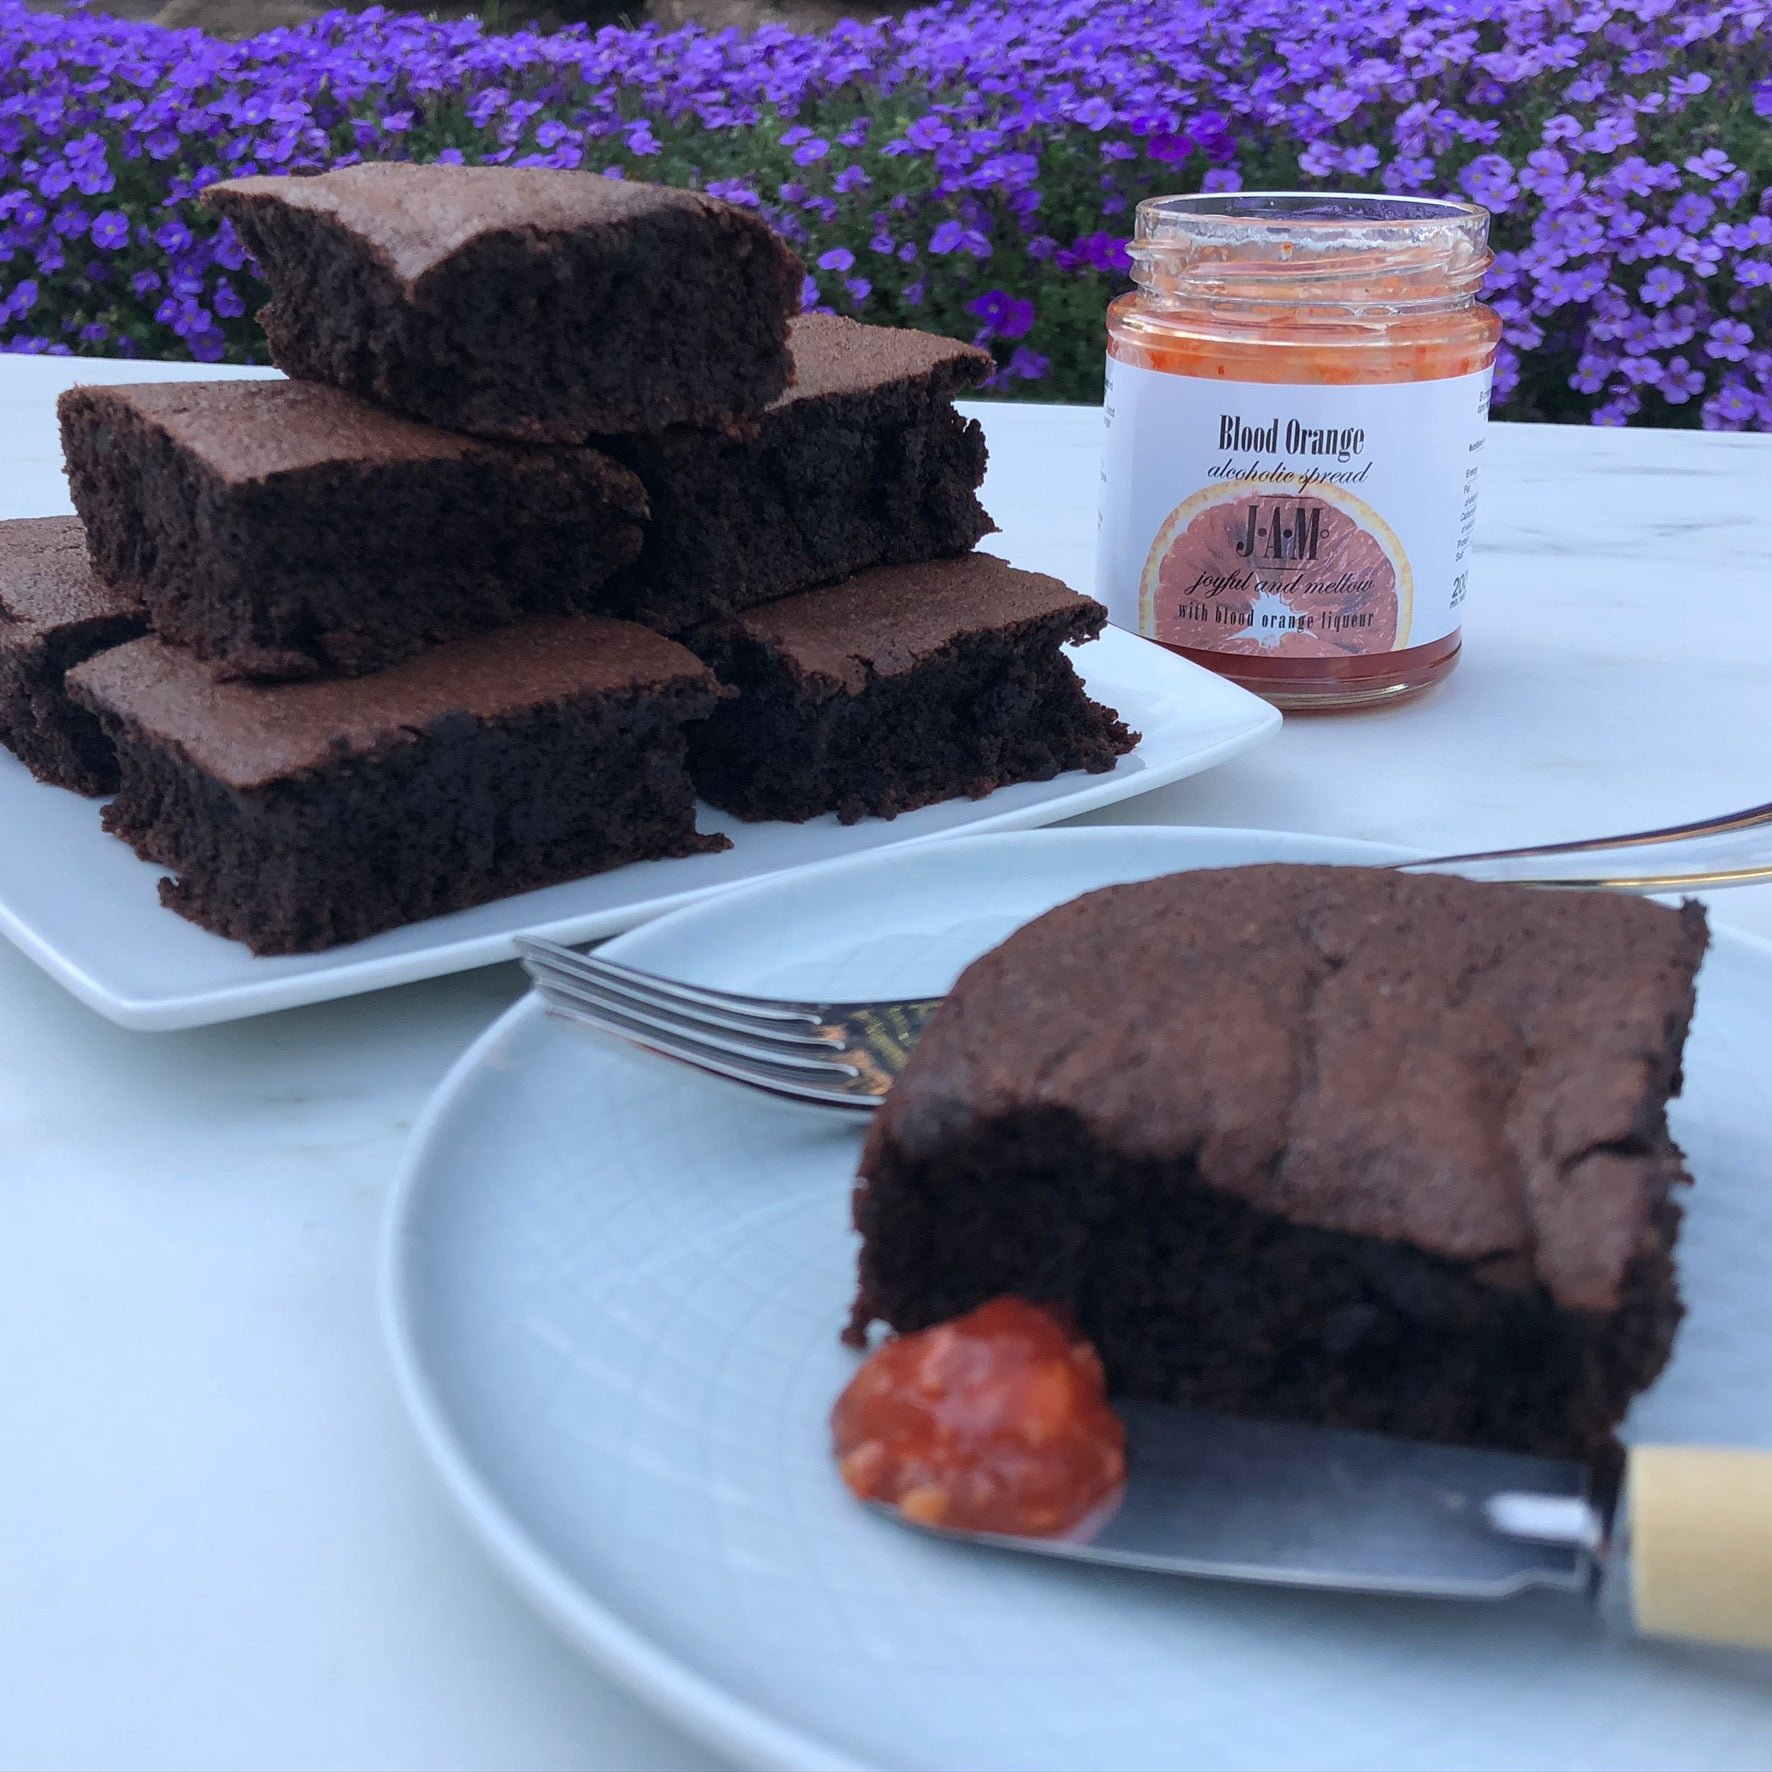 Blood Orange Liqueur Jam with Brownies